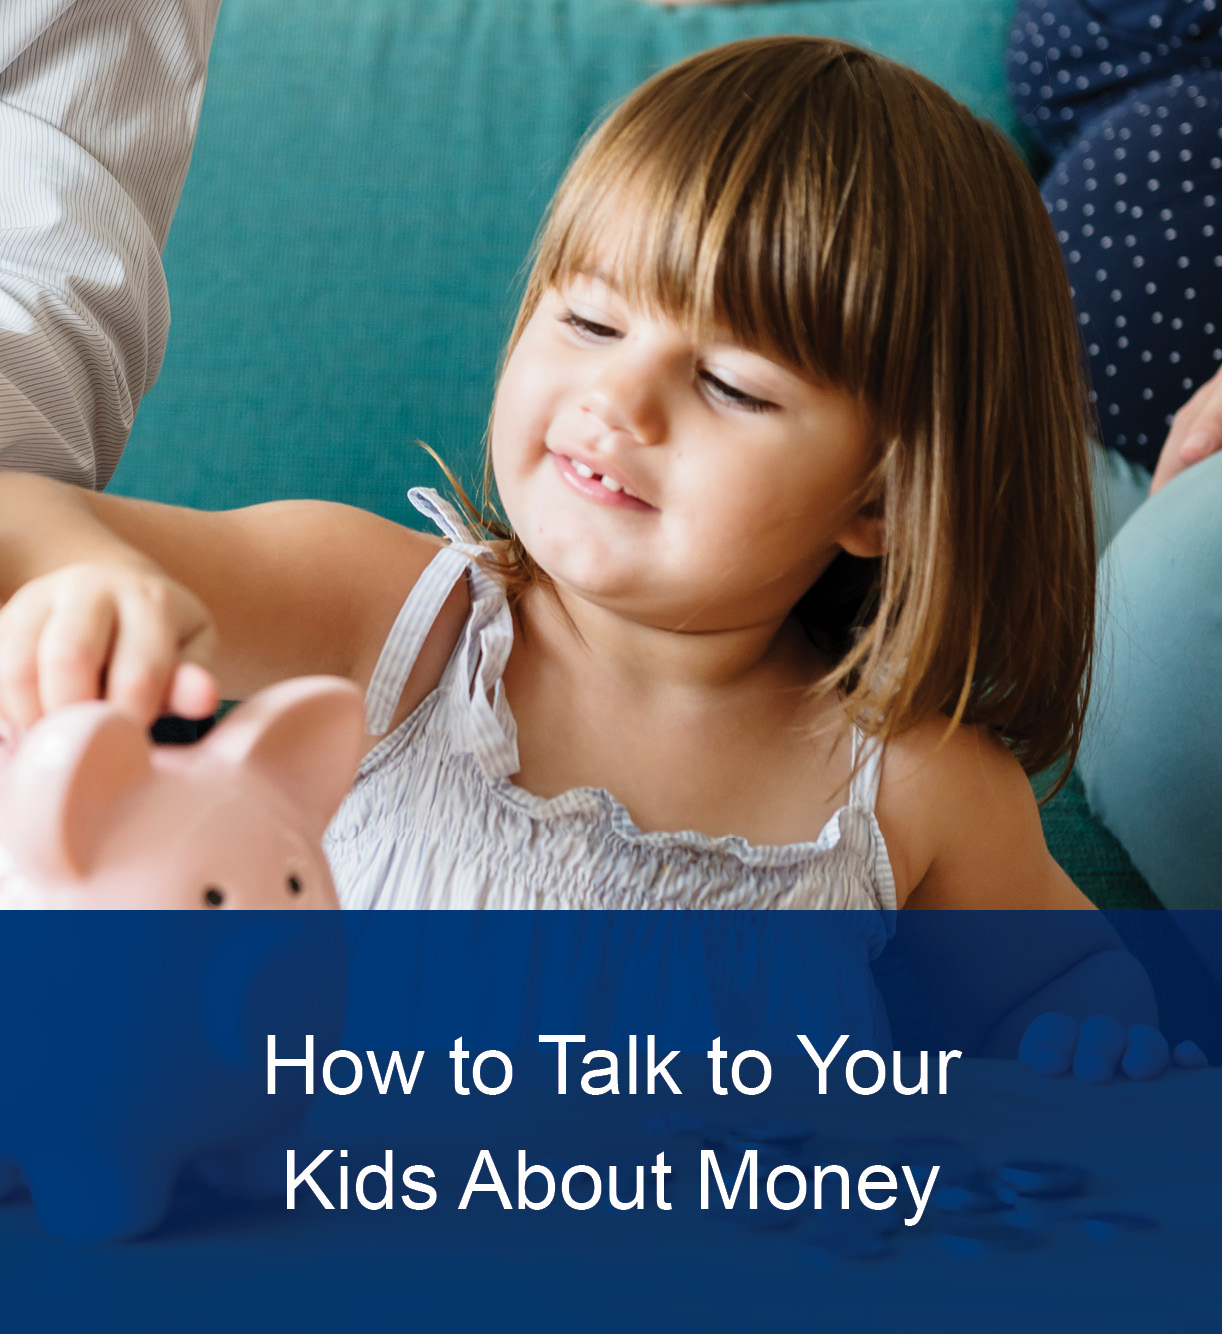 How To Talk To Your Kids About Money